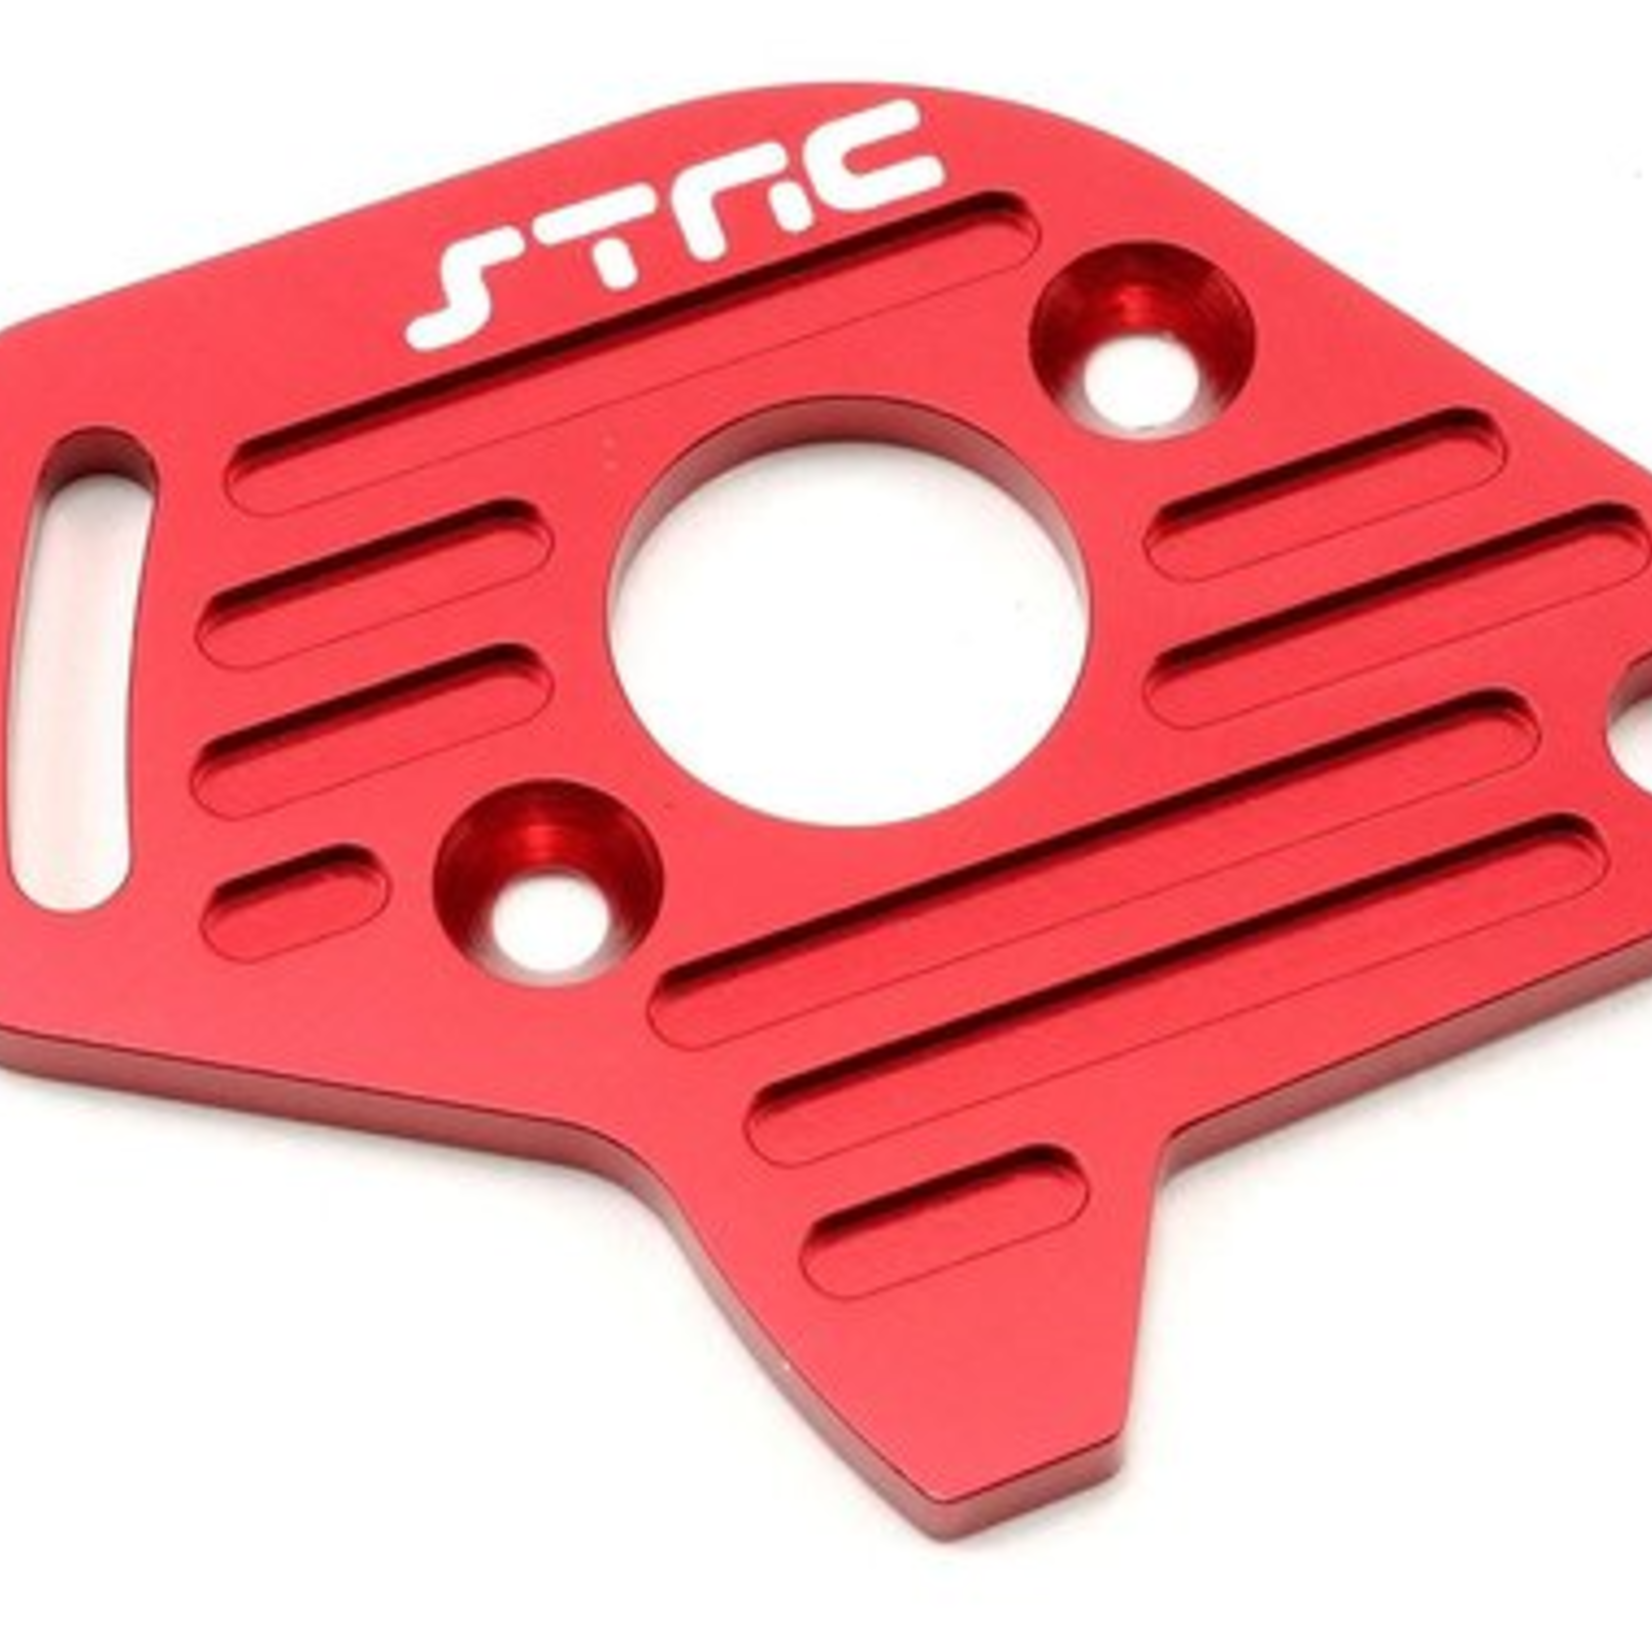 ST Racing Concepts SPTST6890R ST Racing Concepts Alum Heat Sink Finned Motor Plate For Slash 4X4 (Red)